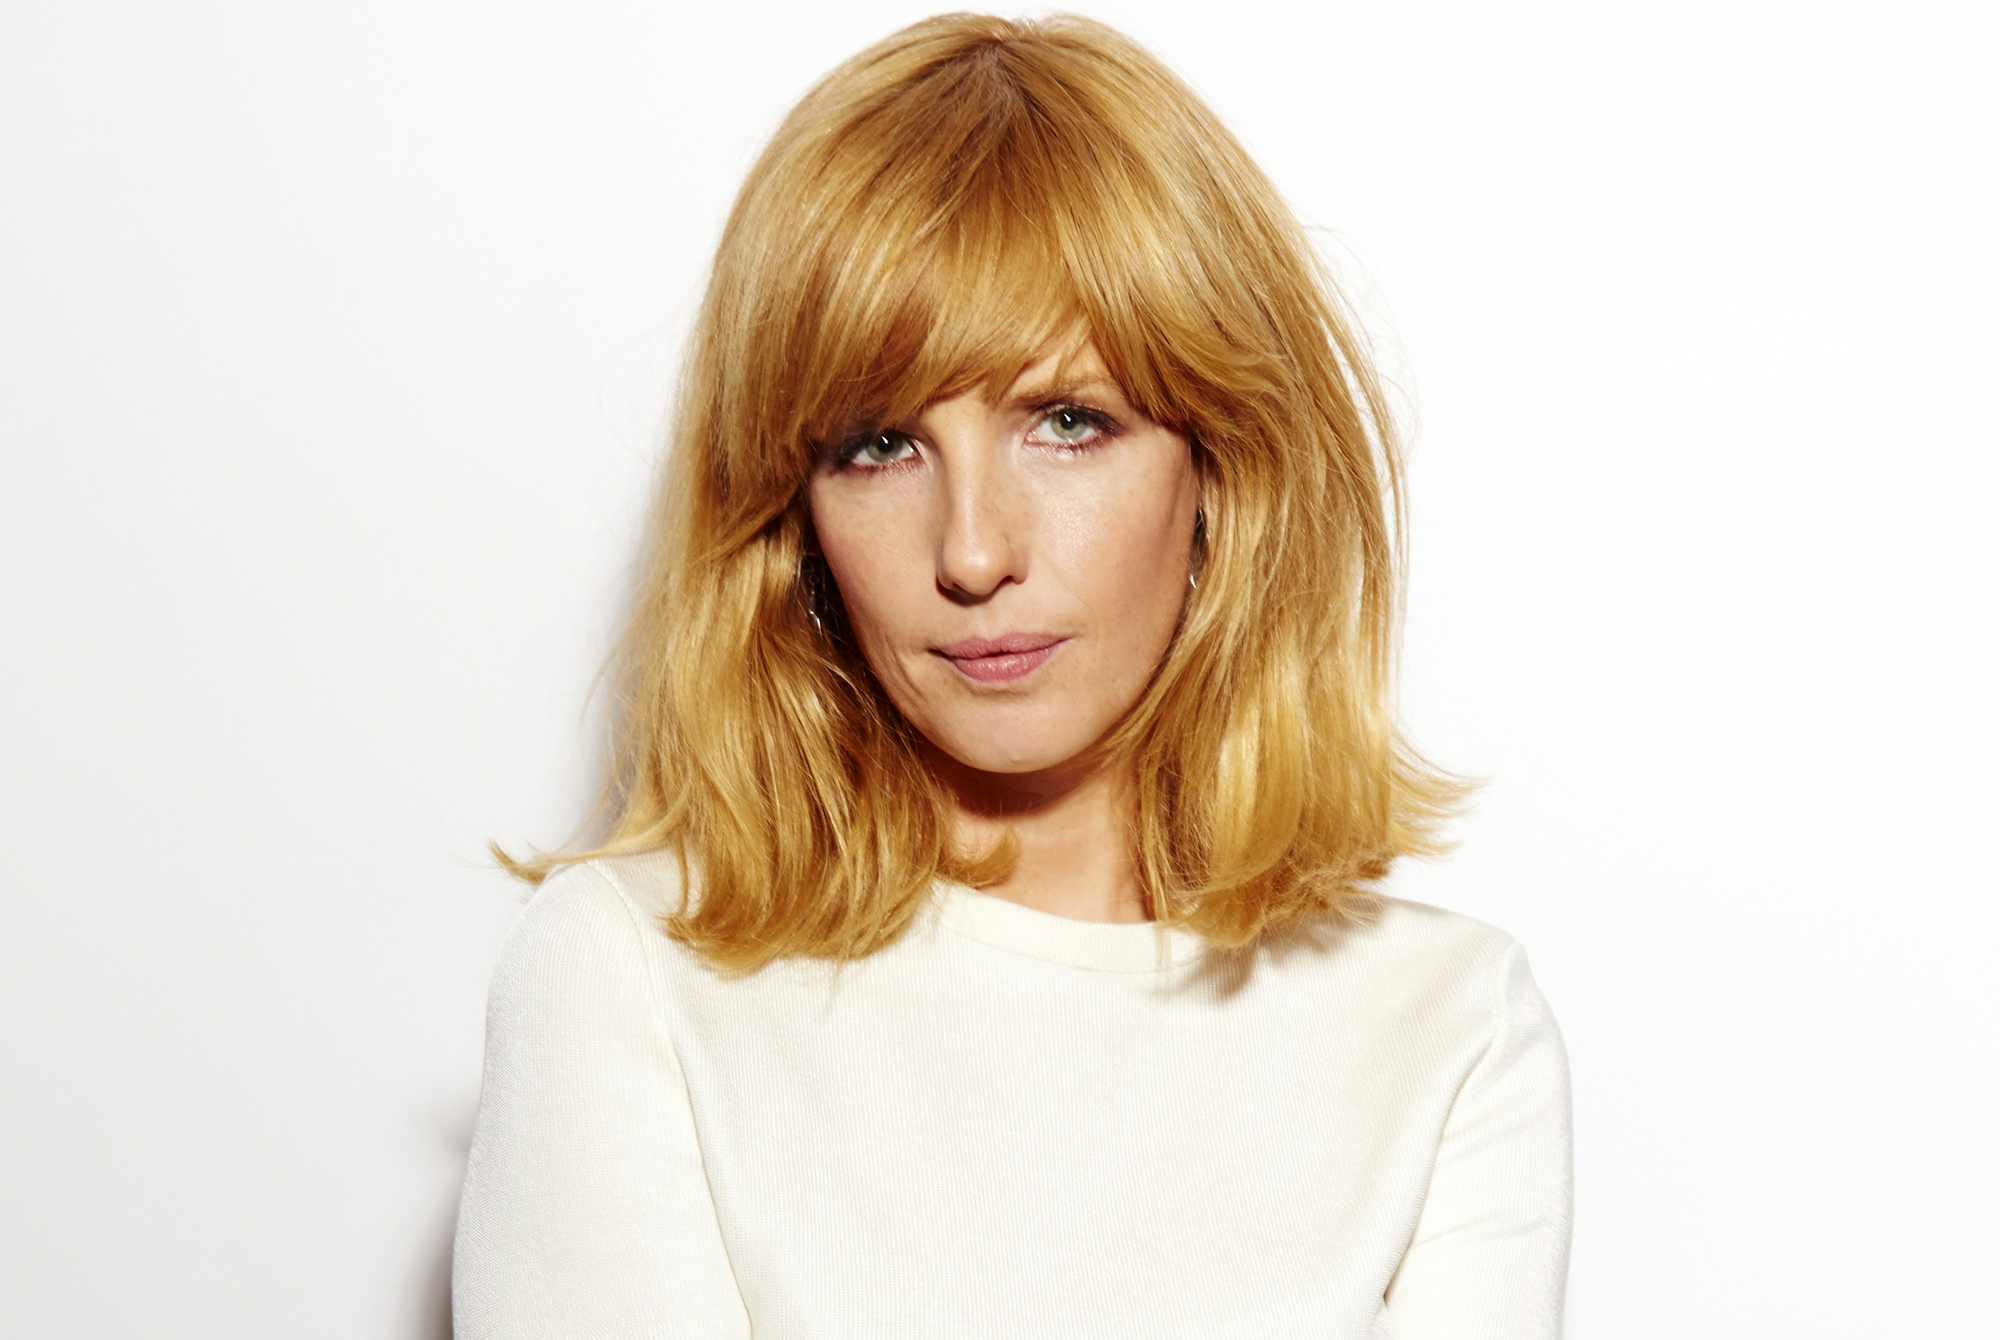 2000x1340 - Kelly Reilly Wallpapers 2